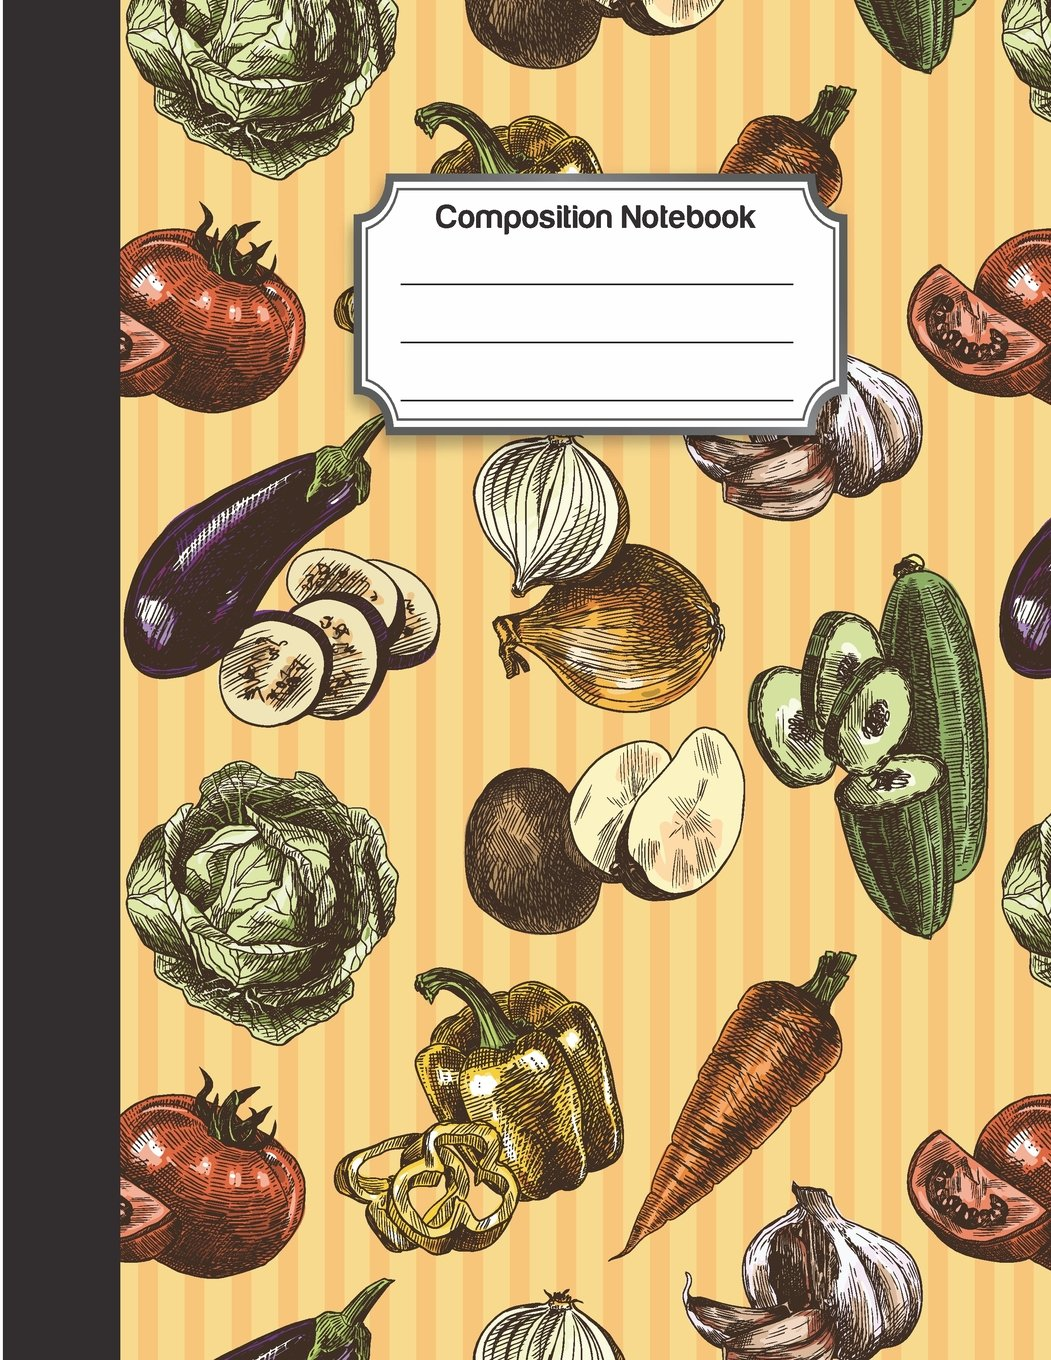 Download Composition Notebook: Color vetetable sketch pattern : College Ruled School Notebooks, Composition Notebook, Subject Daily Journal Notebook : 120 Lined Pages (Large, 8.5 x 11 in.) pdf epub